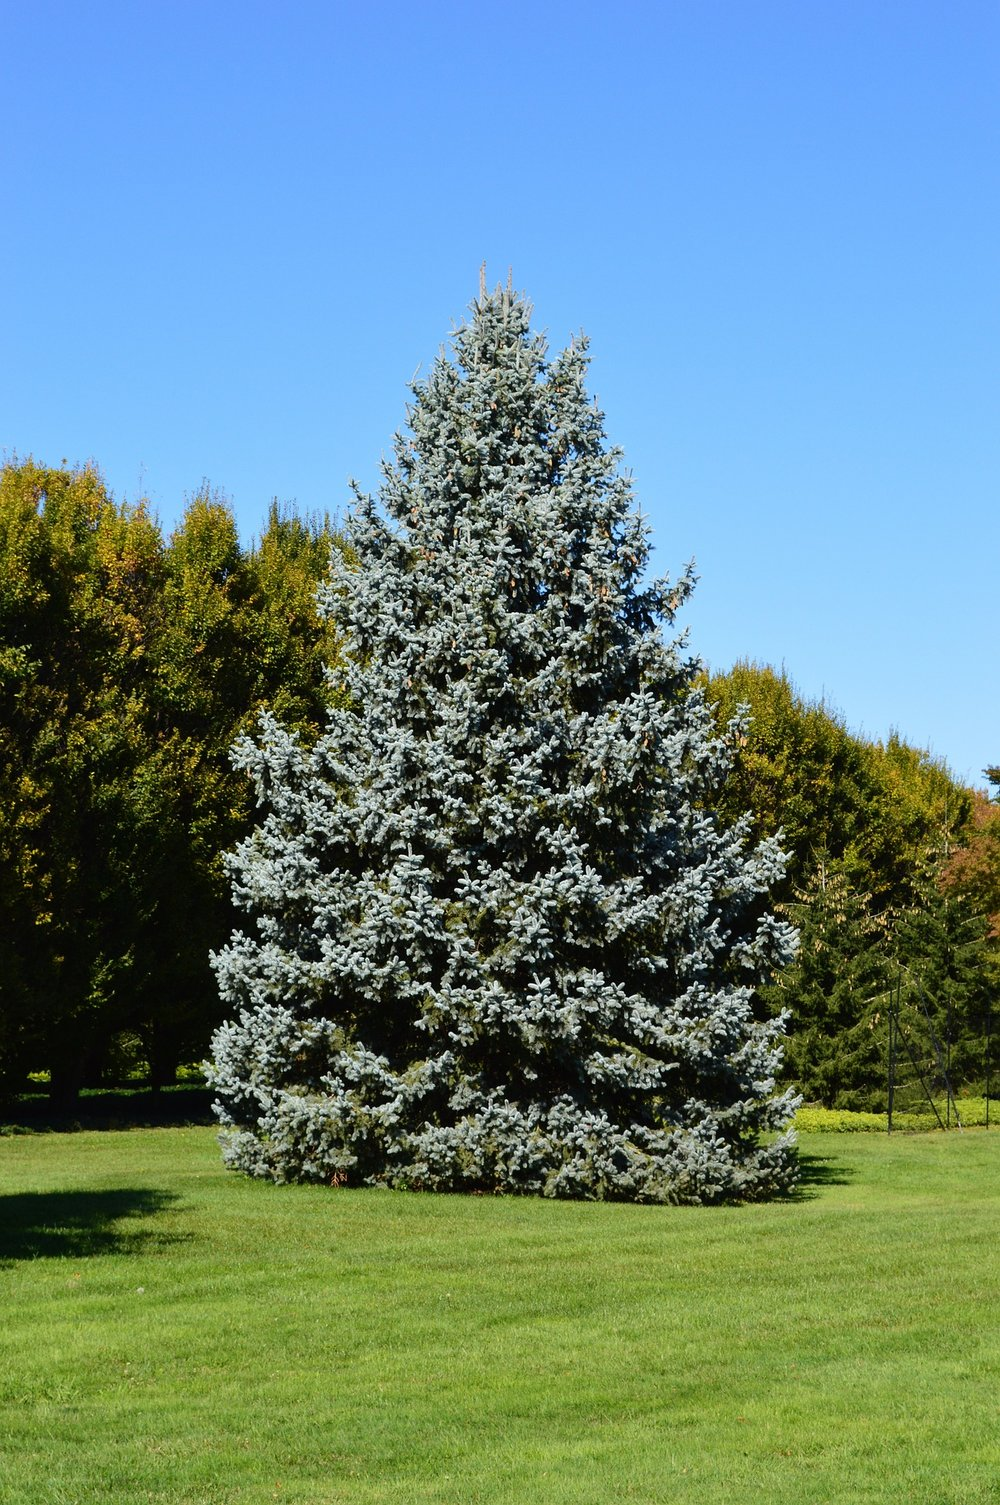 Spruces - Sometimes, one tree is enough. You don't need a row or a hedge, just a well-placed large tree to obscure an eyesore from either direction. Spruces fit nicely into that category. Zone: 2-8Size: 40'-60' x 10'-20' (Norway),10'-15 x 10'-15' (smaller blue spruces)Cultivars Suggested: 'Fat Albert', 'Baby Blue Eyes', Norway, OrientalCulture: Full sun, does not like wet feet, good wind screenGrowth rate: SlowPests and Diseases: Needle cast, canker, bagworms*Colorado Blue Spruce pictured